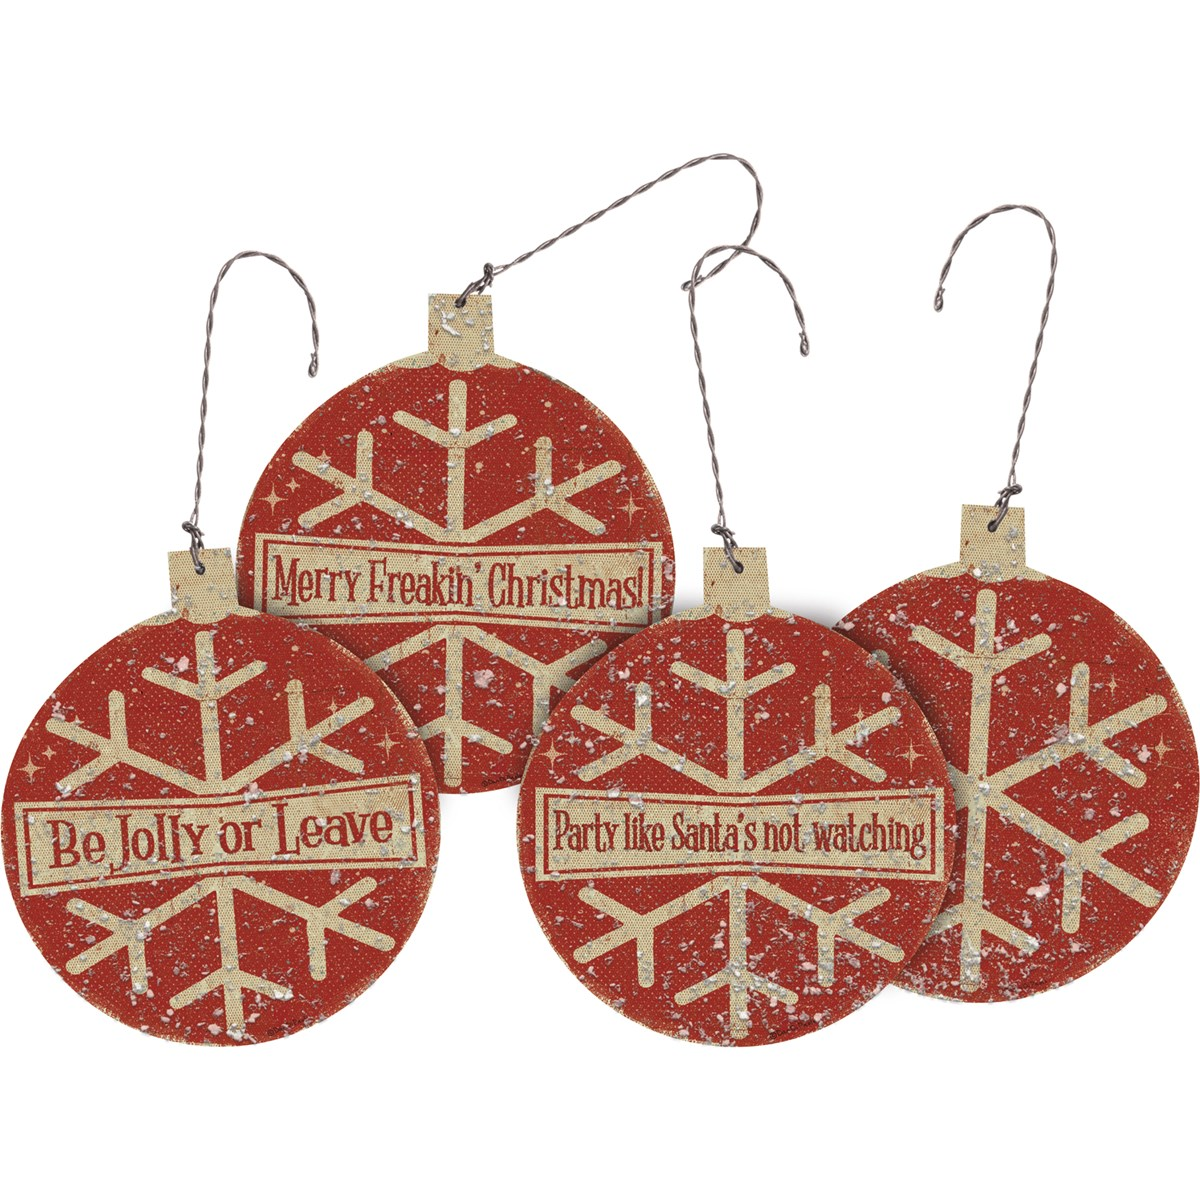 "Ornament Set - Be Jolly - 3.50"" x 4"" x 0.25"" - Wood, Paper, Wire, Mica"